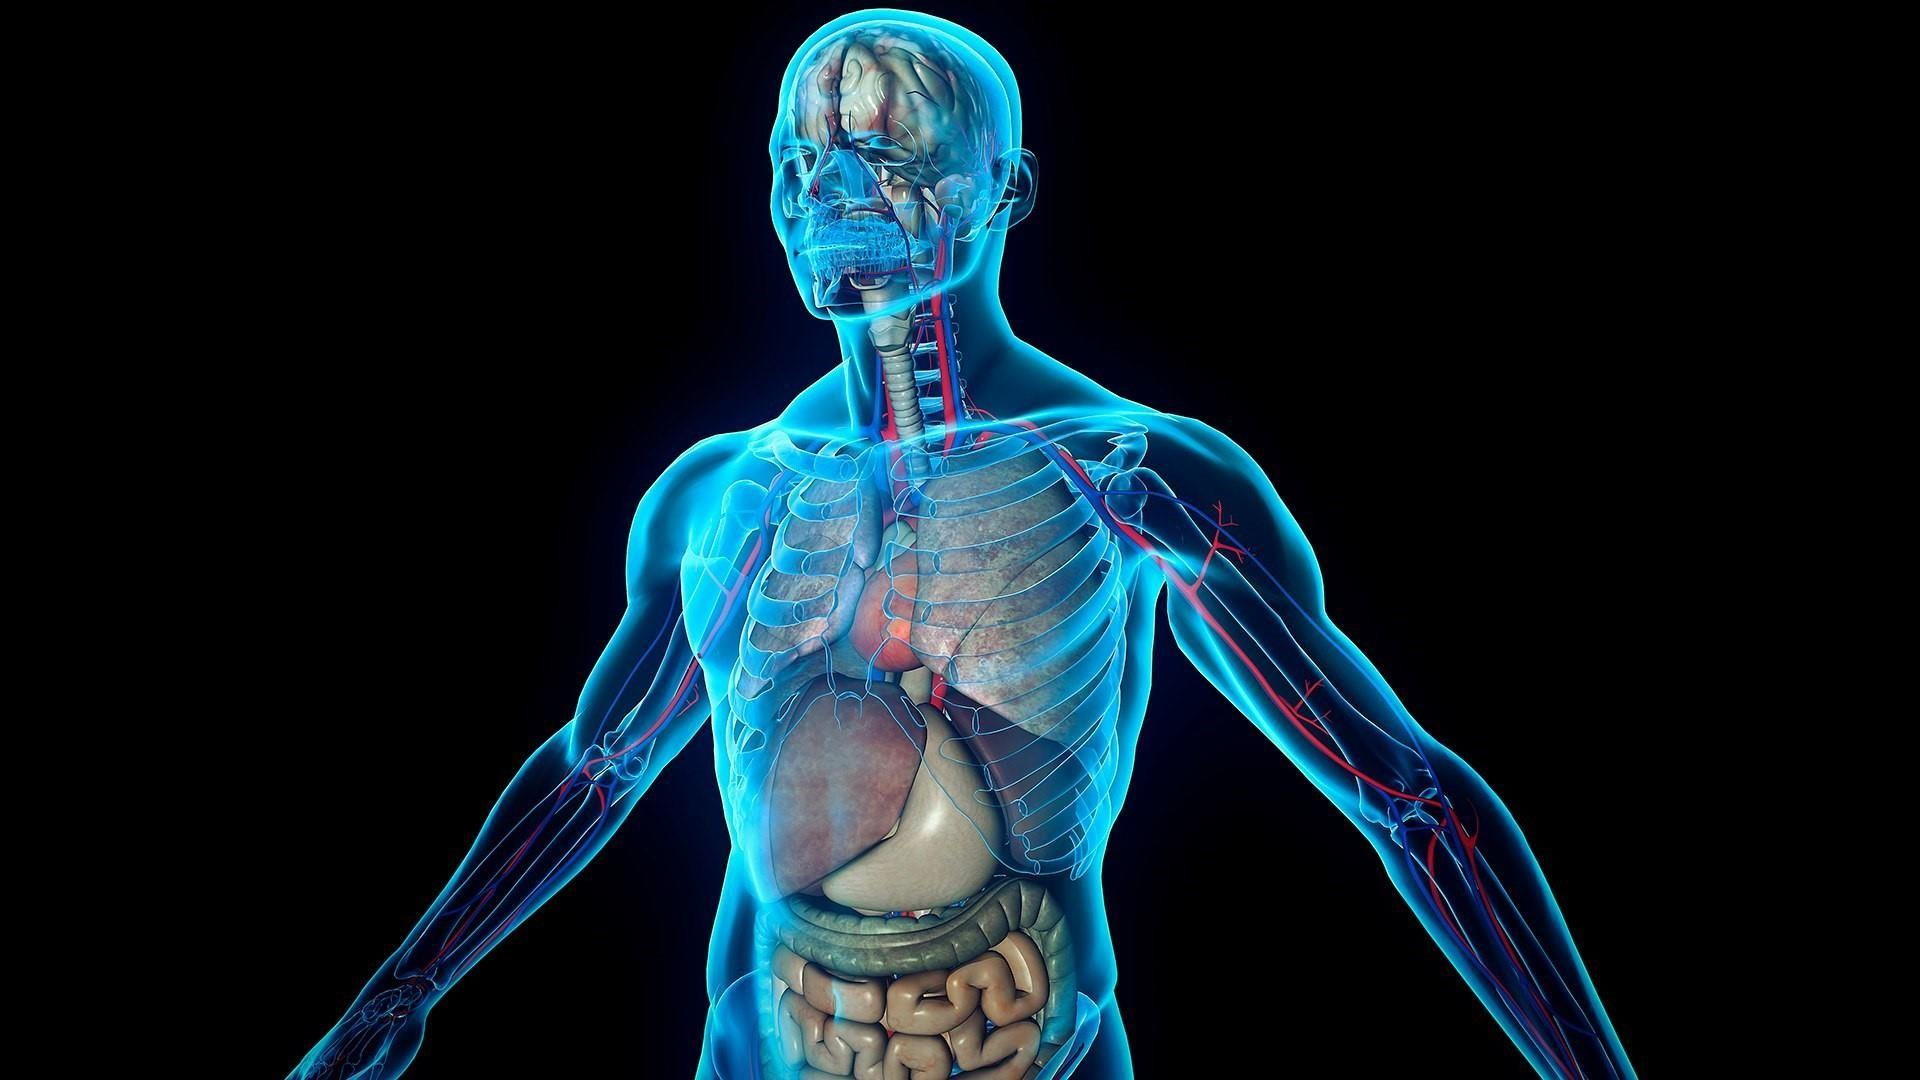 4.2.1 - Systems in the Human Body